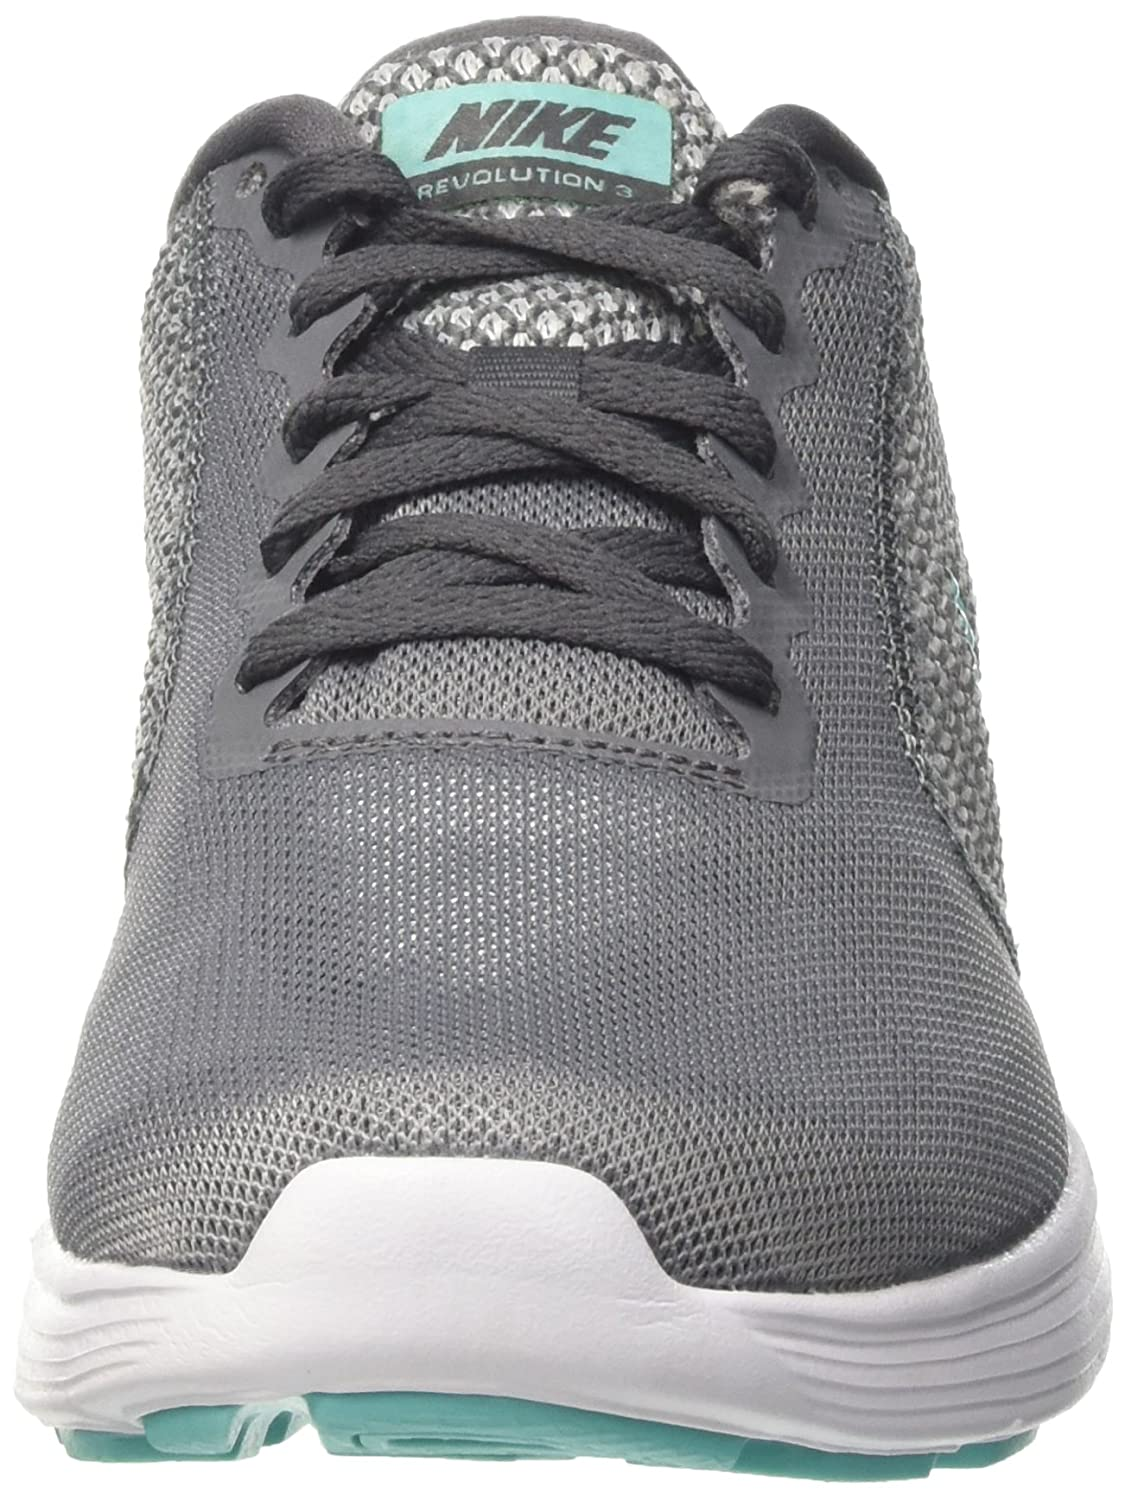 NIKE Women's US|Cool Revolution 3 Running Shoe B007NALJ5A 8.5 B(M) US|Cool Women's Grey/Aurora Green/Dark Grey/White 55b194